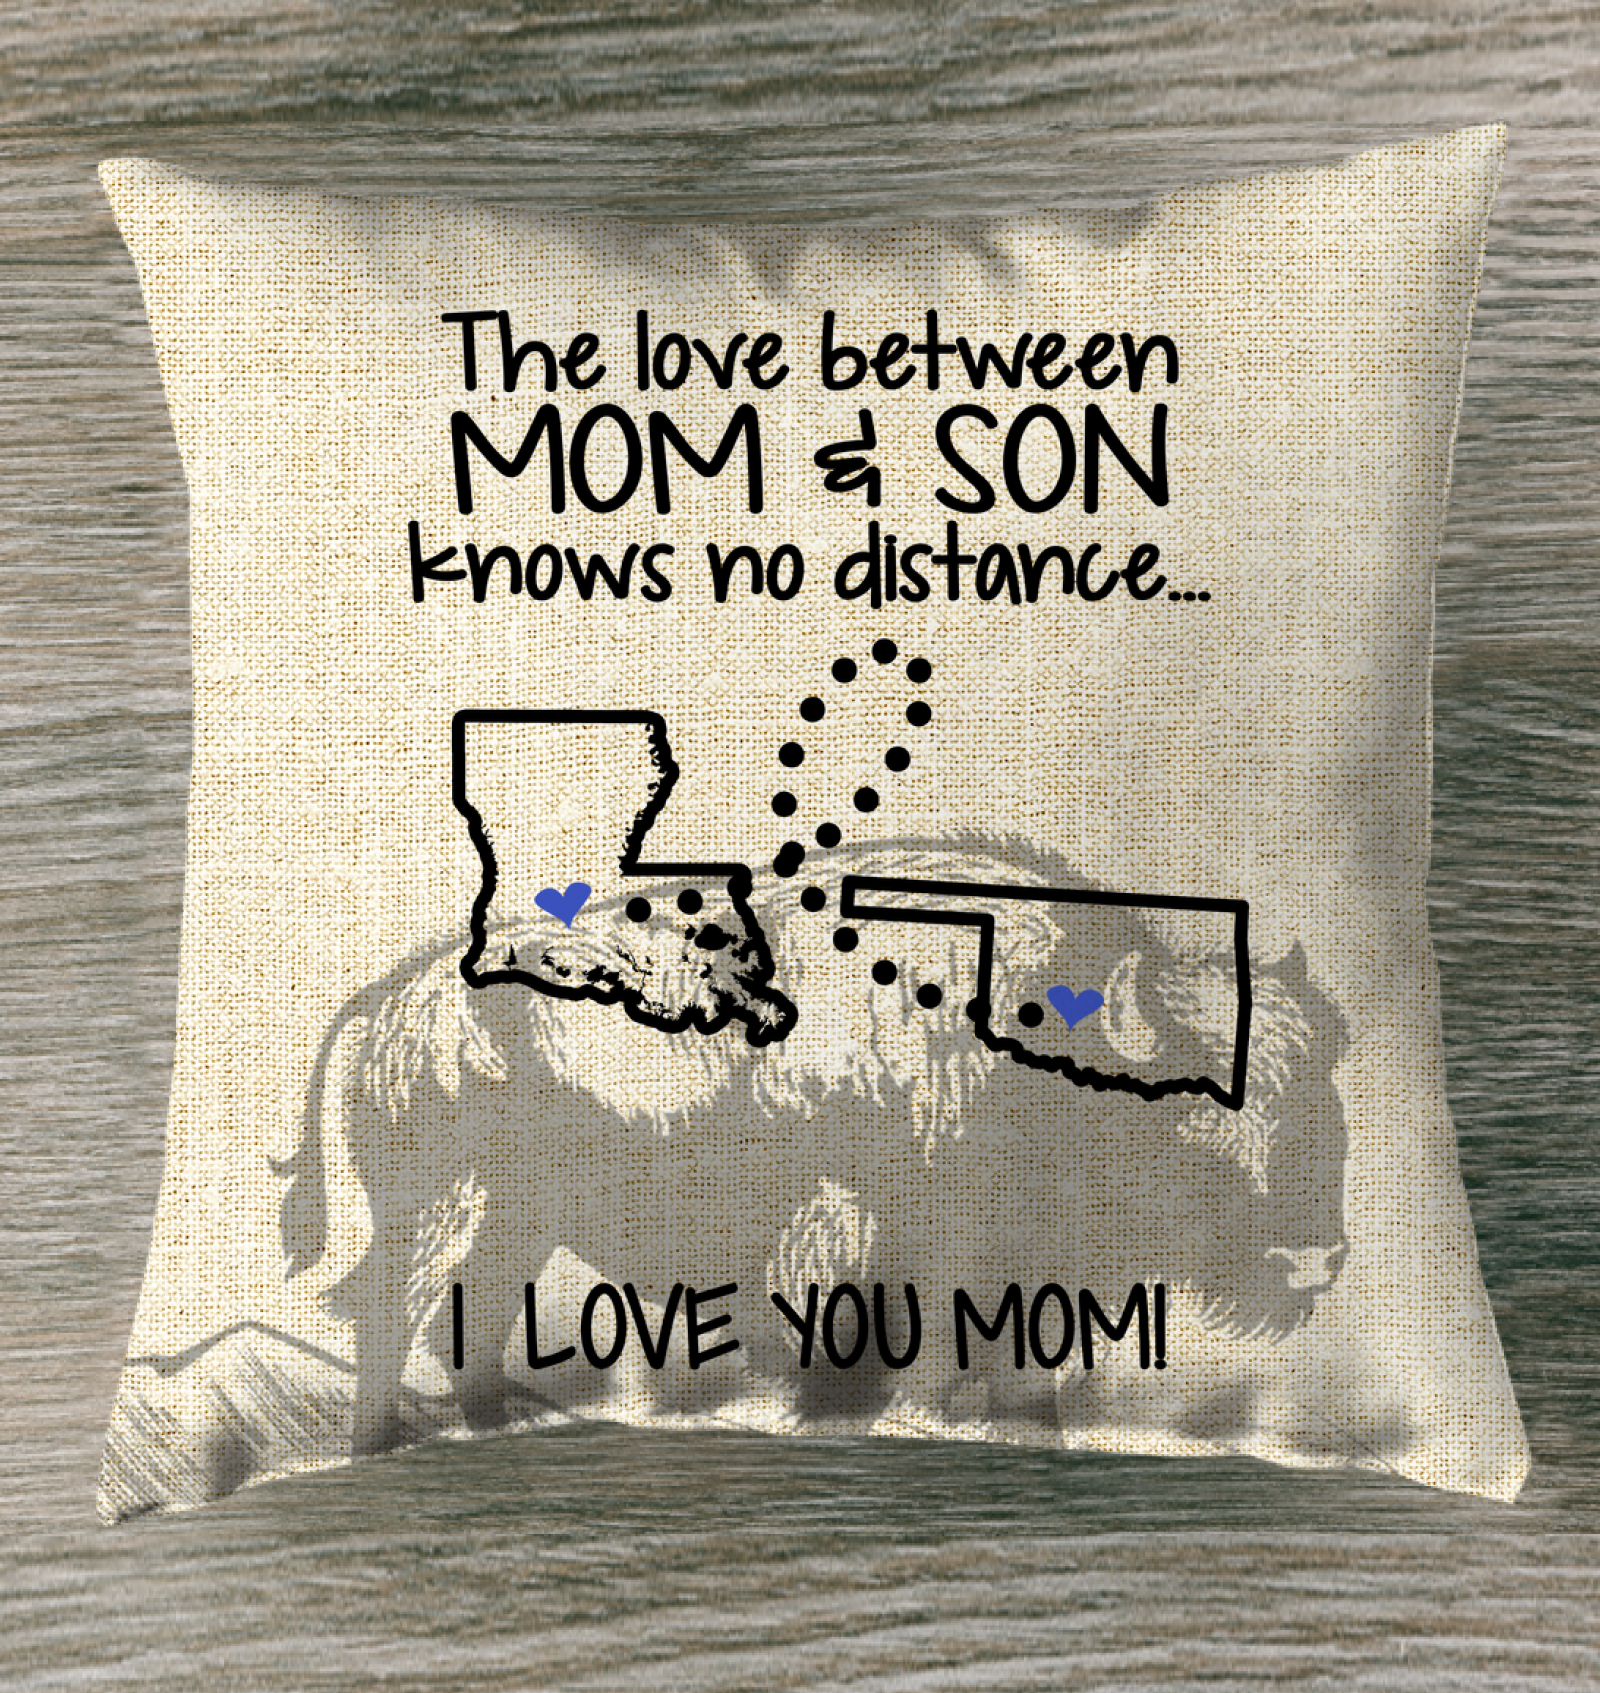 OKLAHOMA LOUISIANA THE LOVE MOM AND SON KNOWS NO DISTANCE